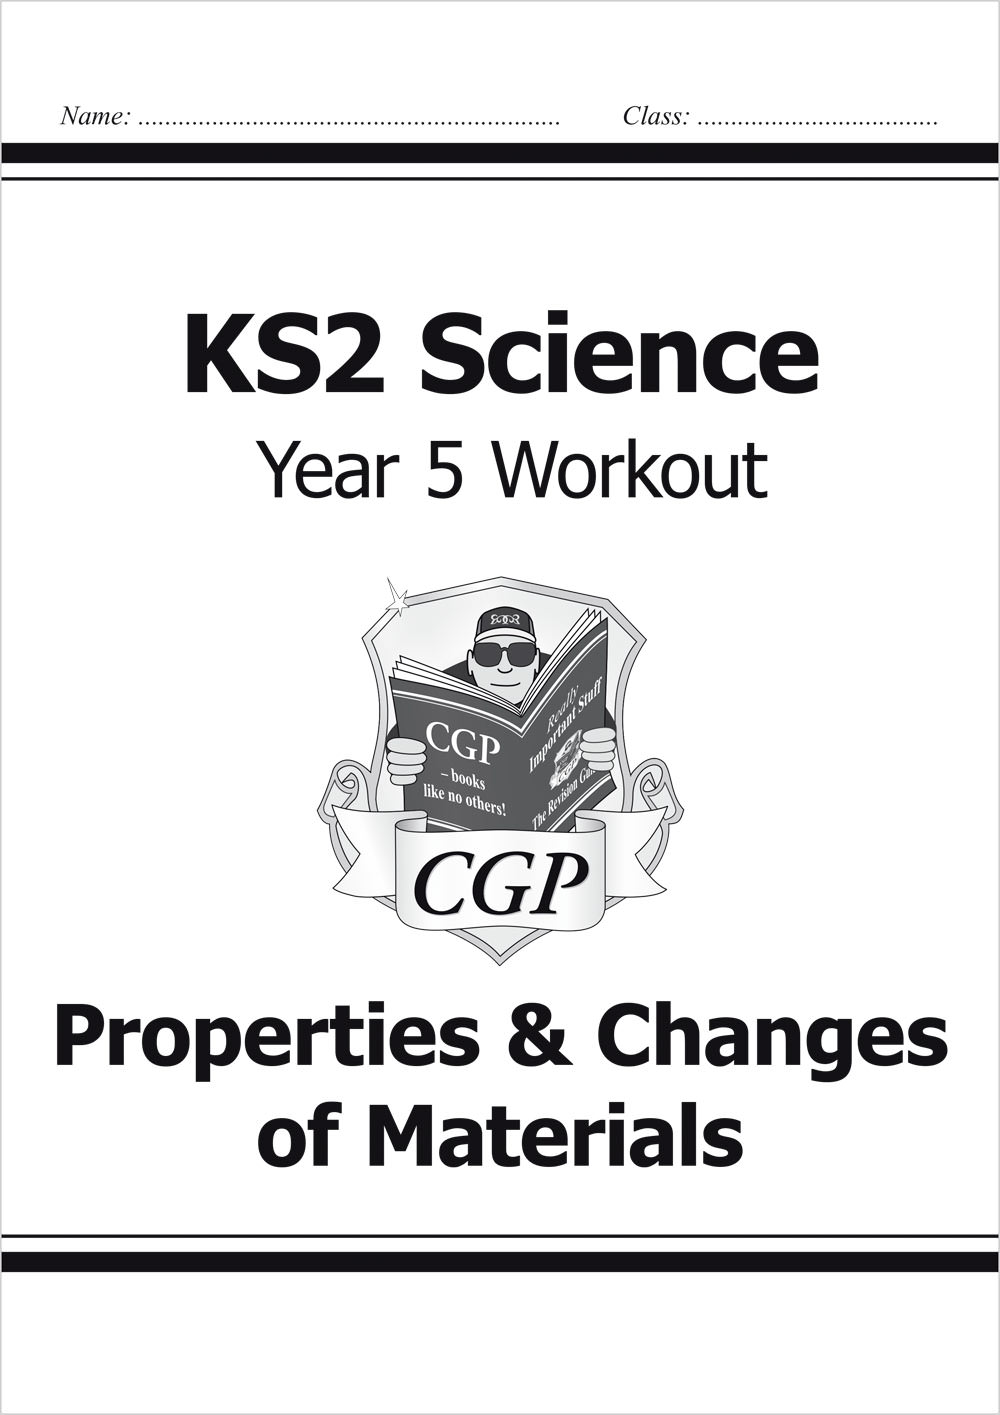 S5B22 - KS2 Science Year Five Workout: Properties & Changes of Materials